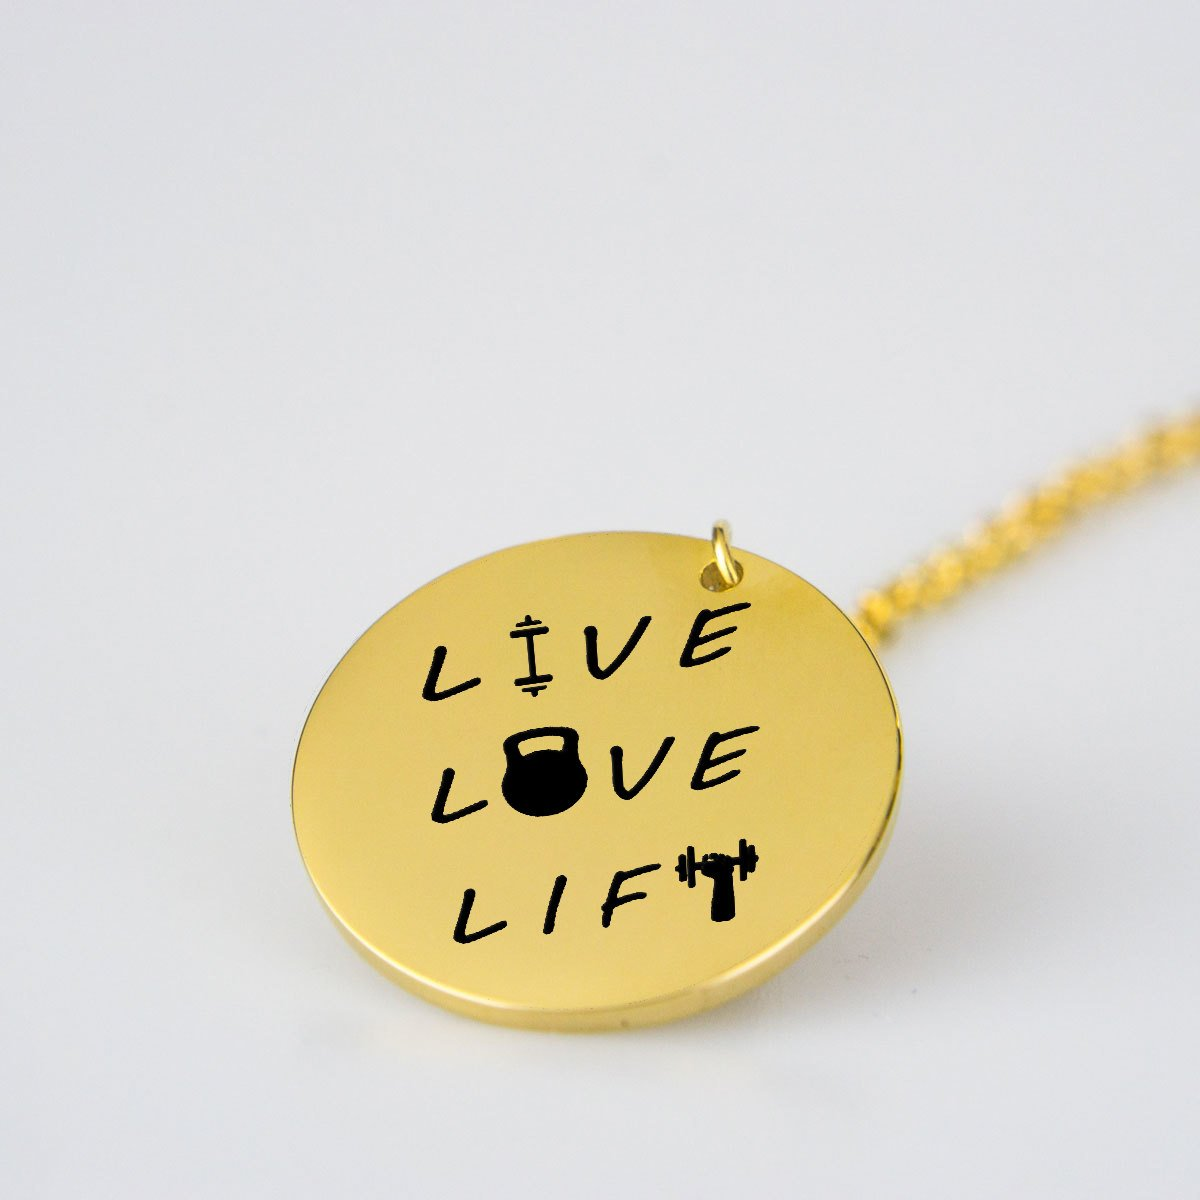 Live Love Lift - Stainless Steel-pendant-Hearts and Gifts